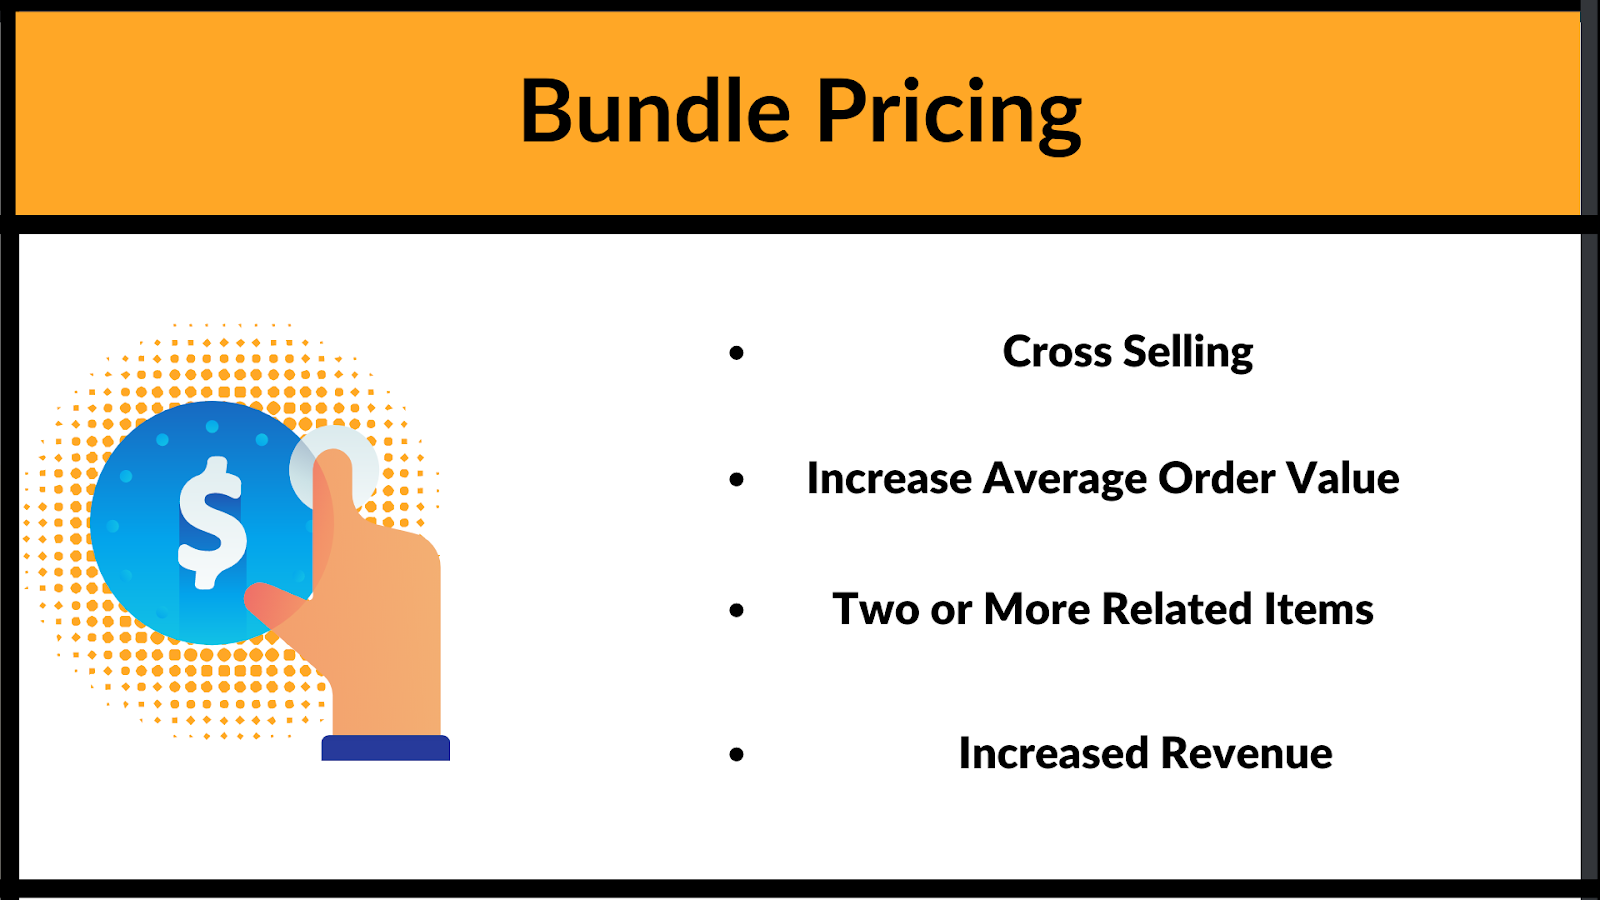 What are the different elements of bundle pricing